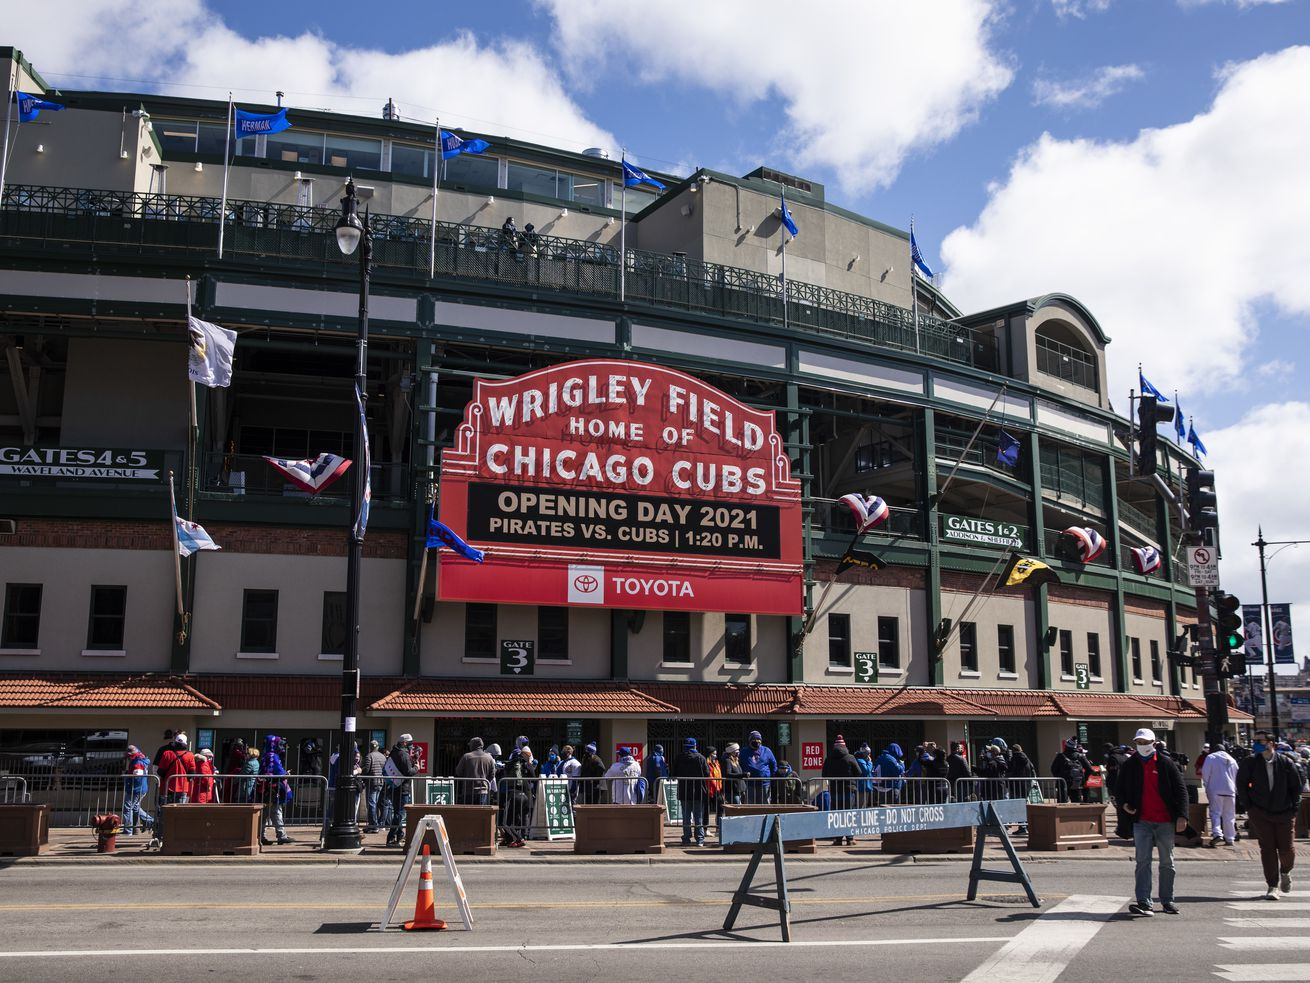 Fans wait to get into Wrigley Field before the Chicago Cubs take on the Pittsburgh Pirates on Opening Day 2021.